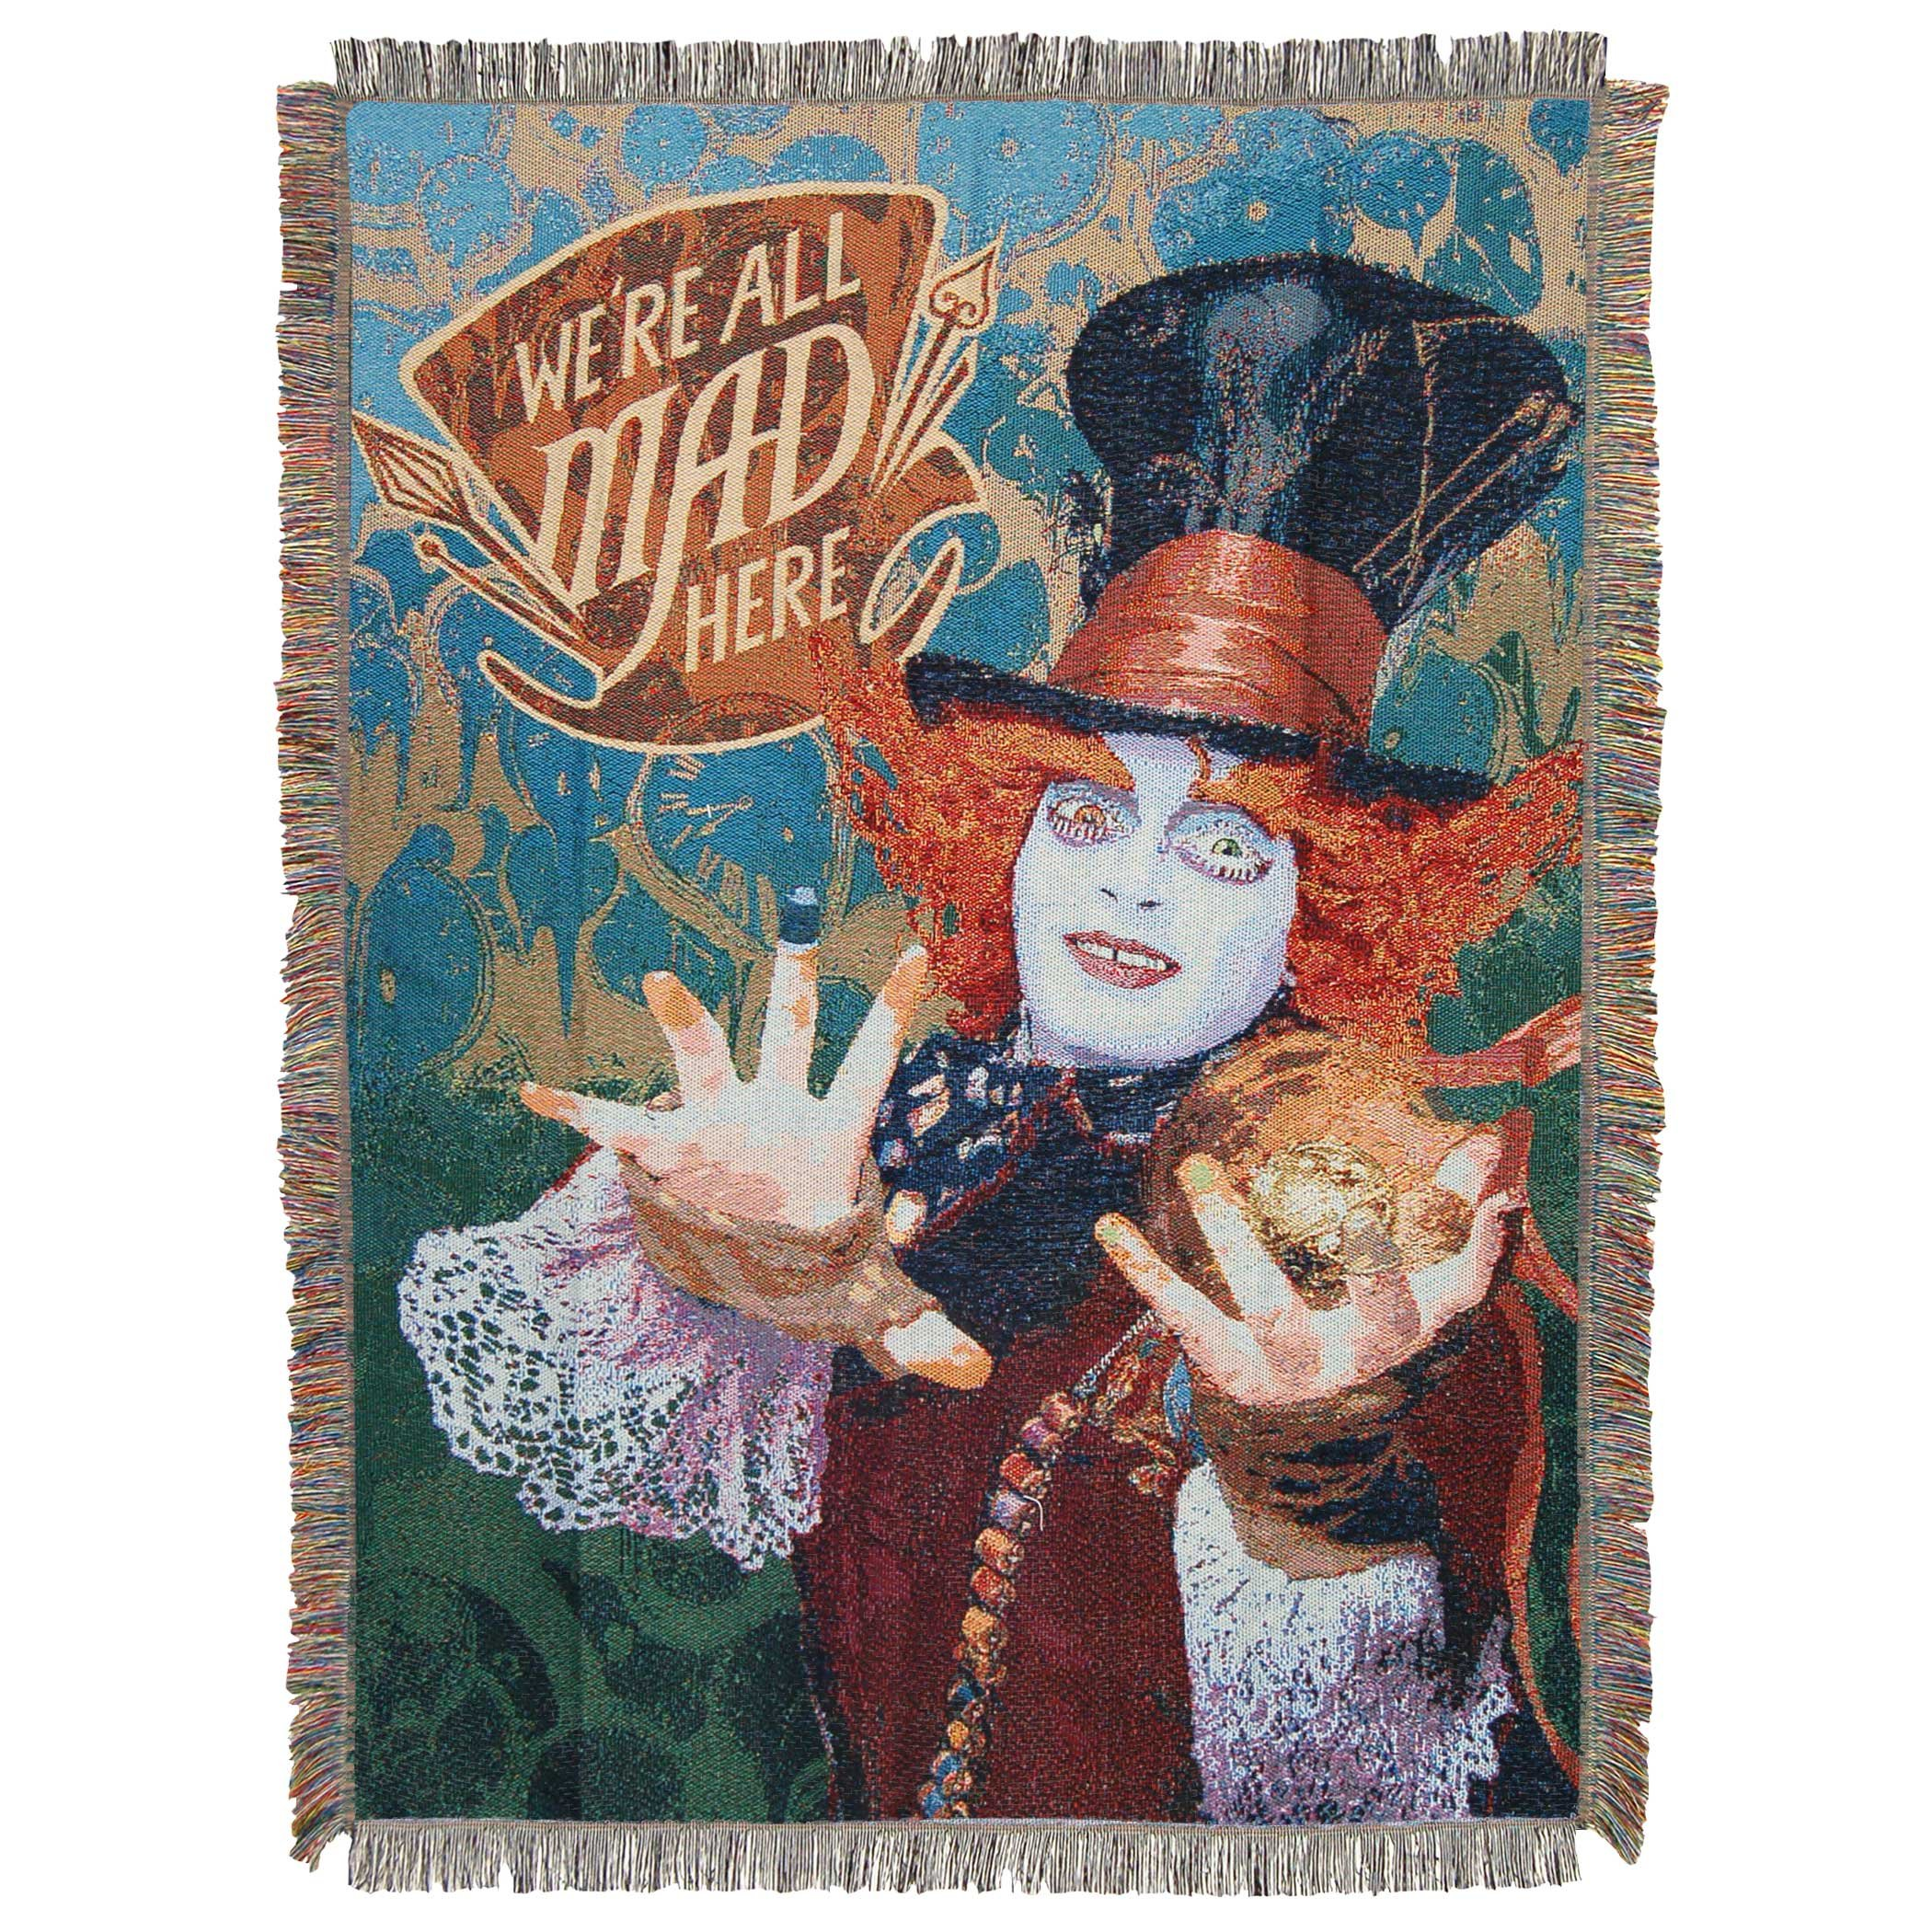 Disney's Alice in Wonderland, ''The Hatter's Mad'' Woven Tapestry Throw Blanket, 48'' x 60'', Multi Color by Disney